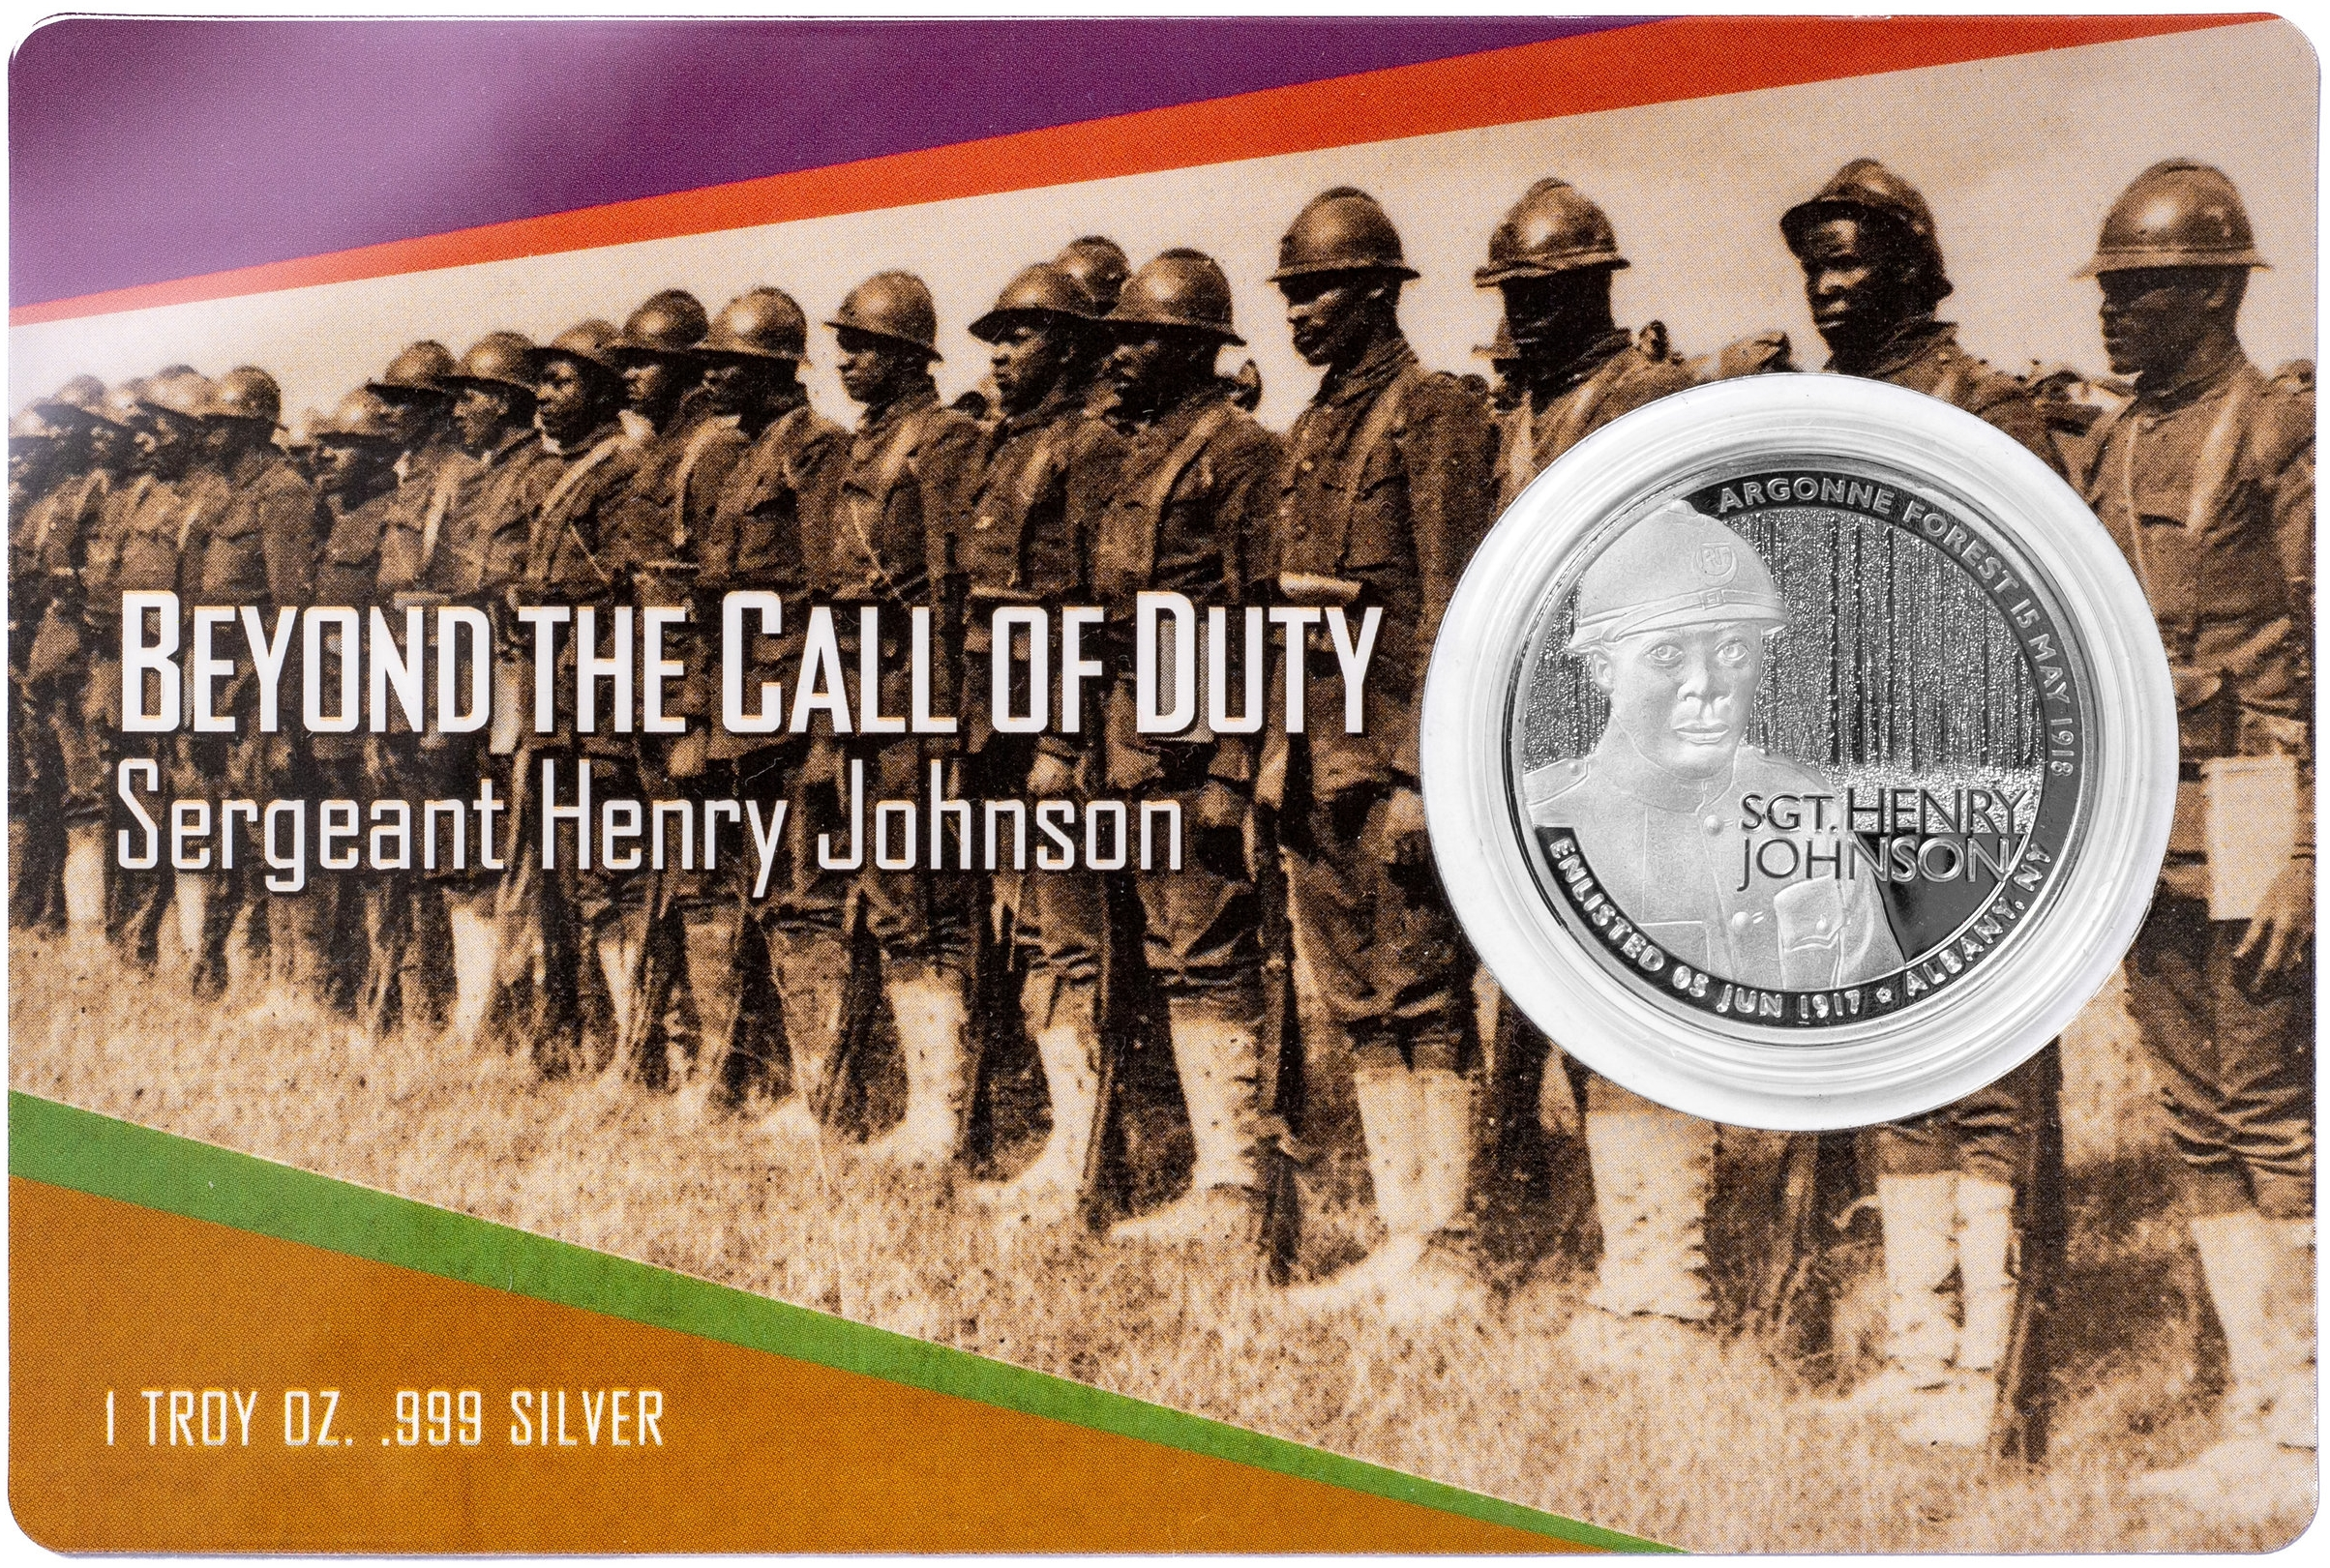 "Photo: Obverse Sgt. Henry Johnson .999 silver round, 1 ozt., as packaged with 4"" x 6"" plastic laminated color cardstock with embedded 39mm capsule. 500 limited minting with serial number."